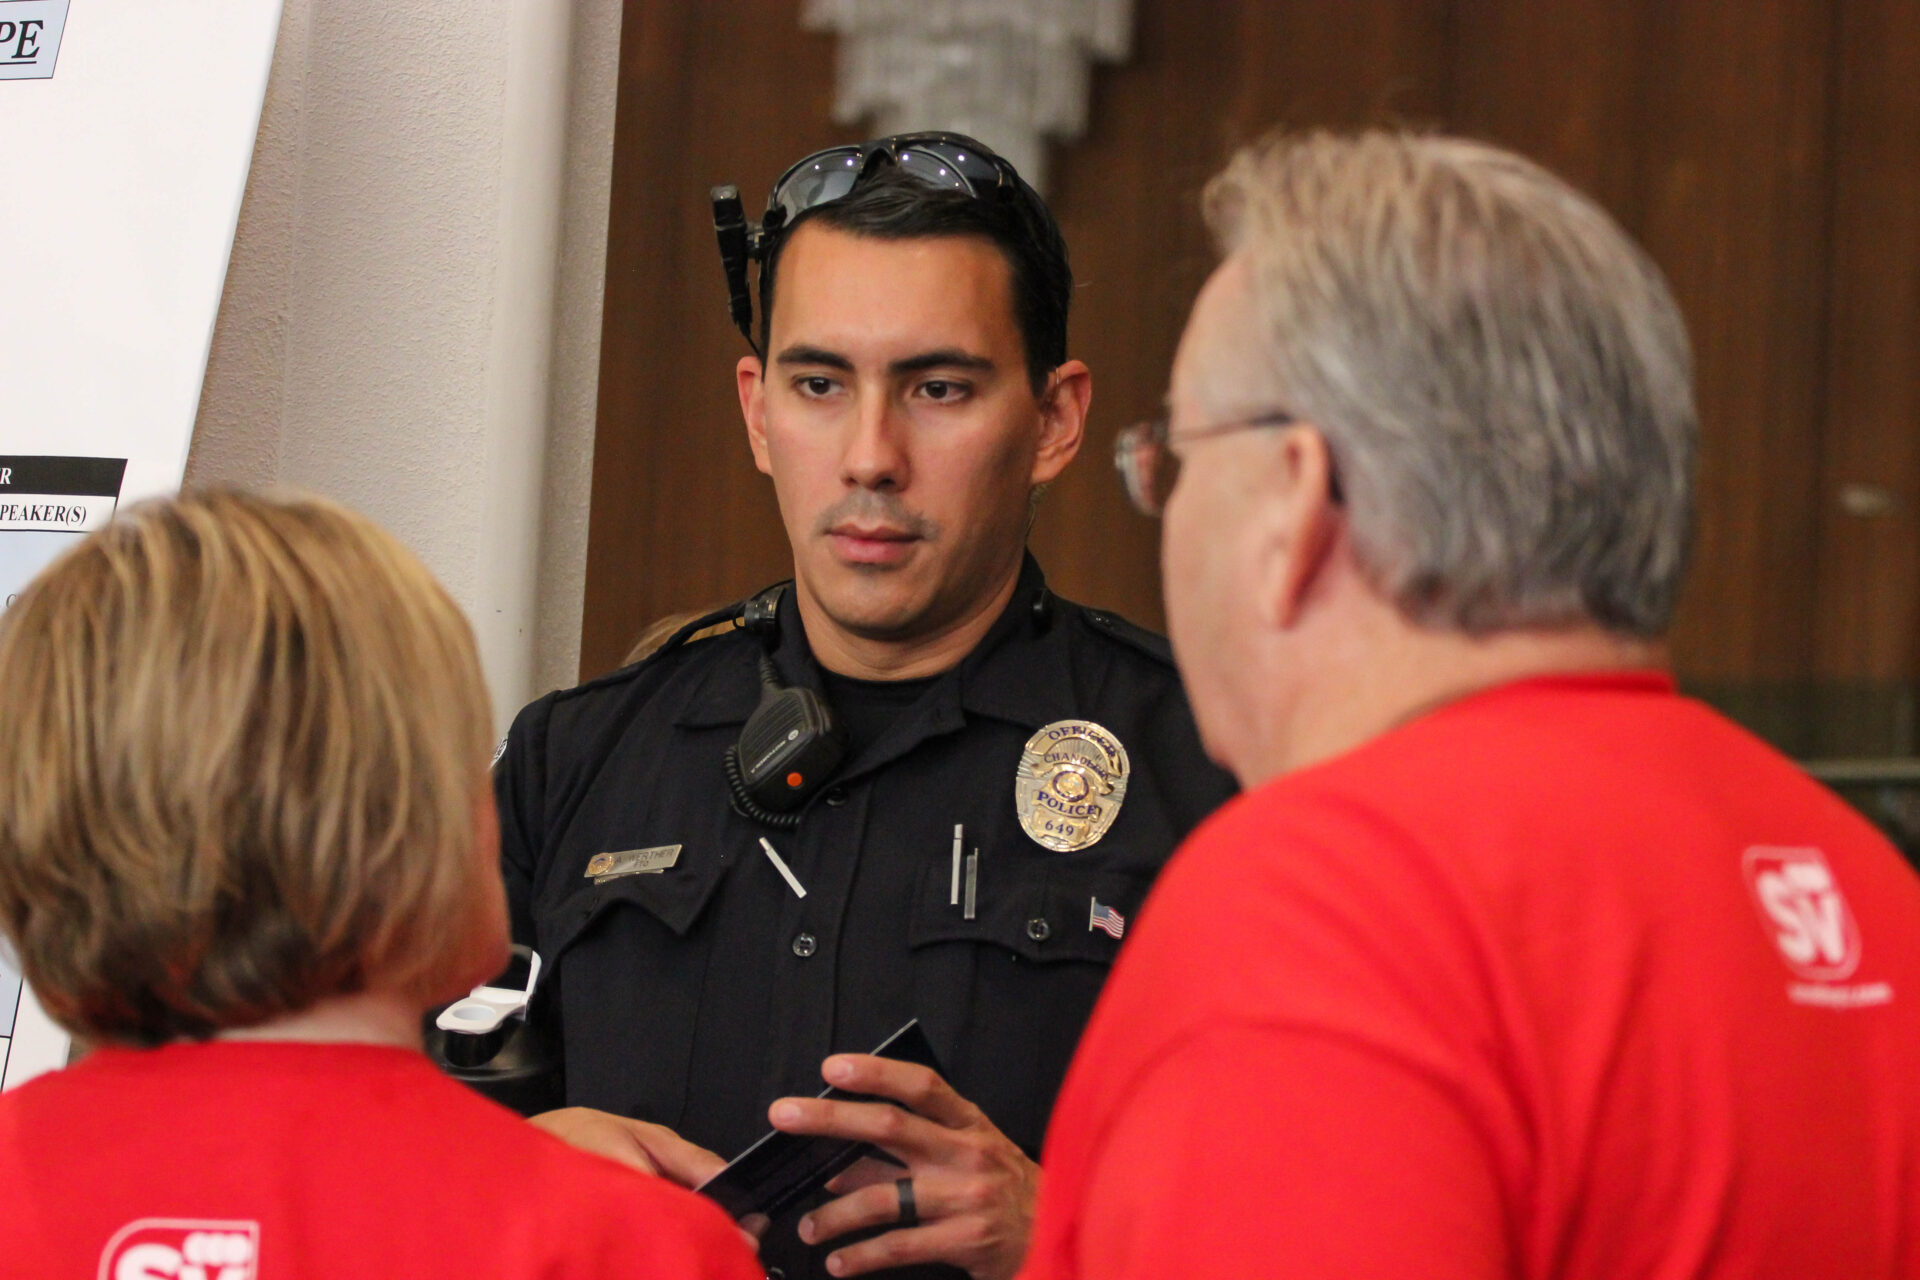 Officer Ariel Werther talked with conference-goers.  (Wrangler News photo by Alex J. Walker)